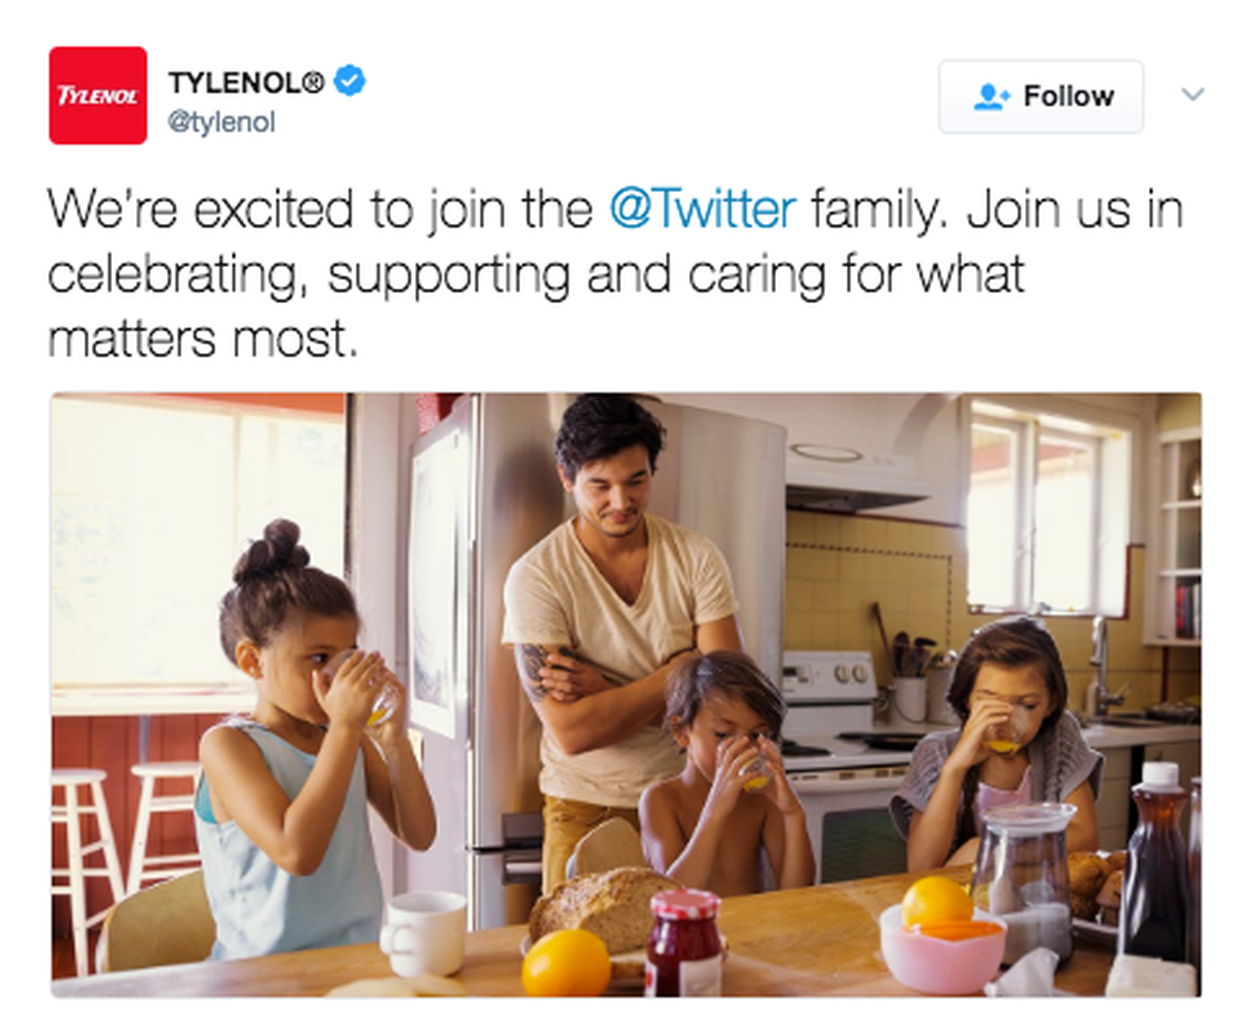 We didn't just talk to moms, we talked to families. - After our launch on Mother's Day, we launched the brand on Twitter. We started to talking to all families of all kinds.